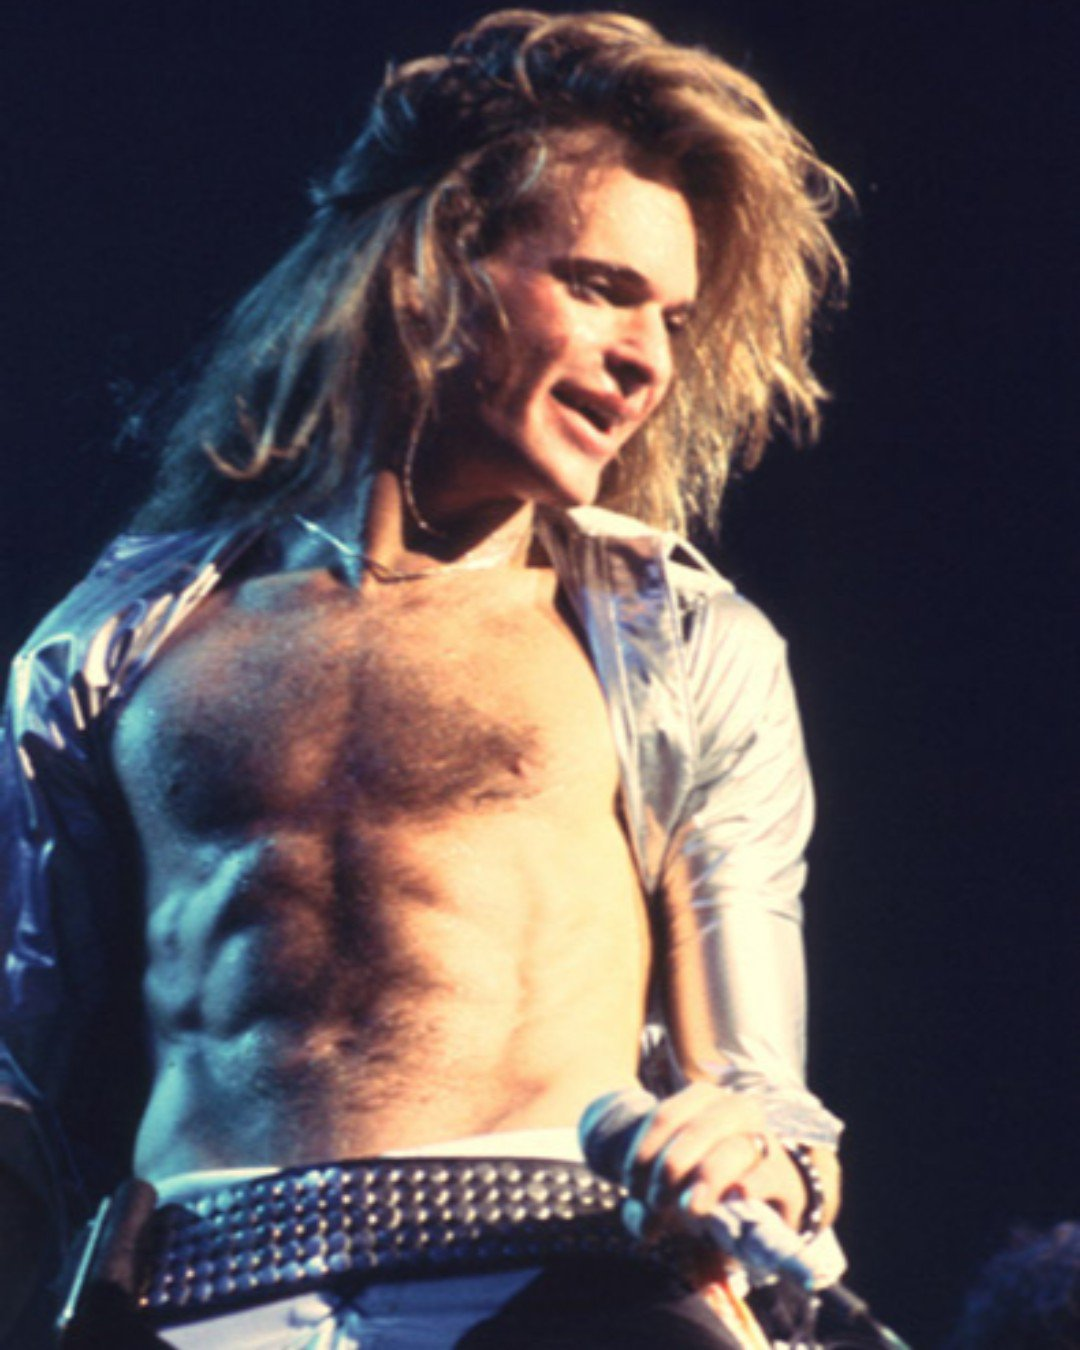 Feliz Cumple David Lee Roth! Happy Bday David Lee Roth!